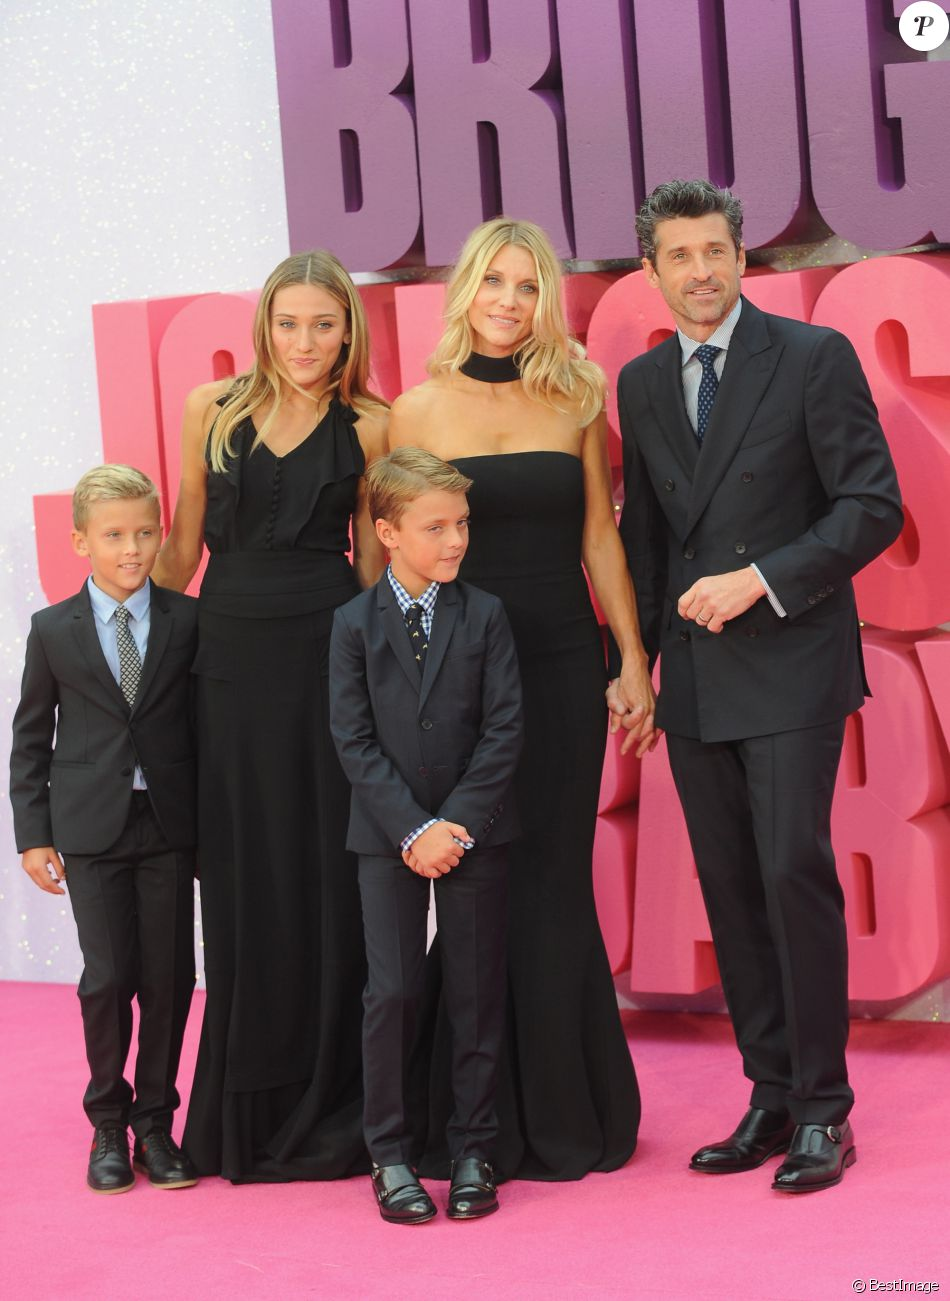 patrick dempsey au top avec sa femme et ses enfants le divorce est si loin purepeople. Black Bedroom Furniture Sets. Home Design Ideas